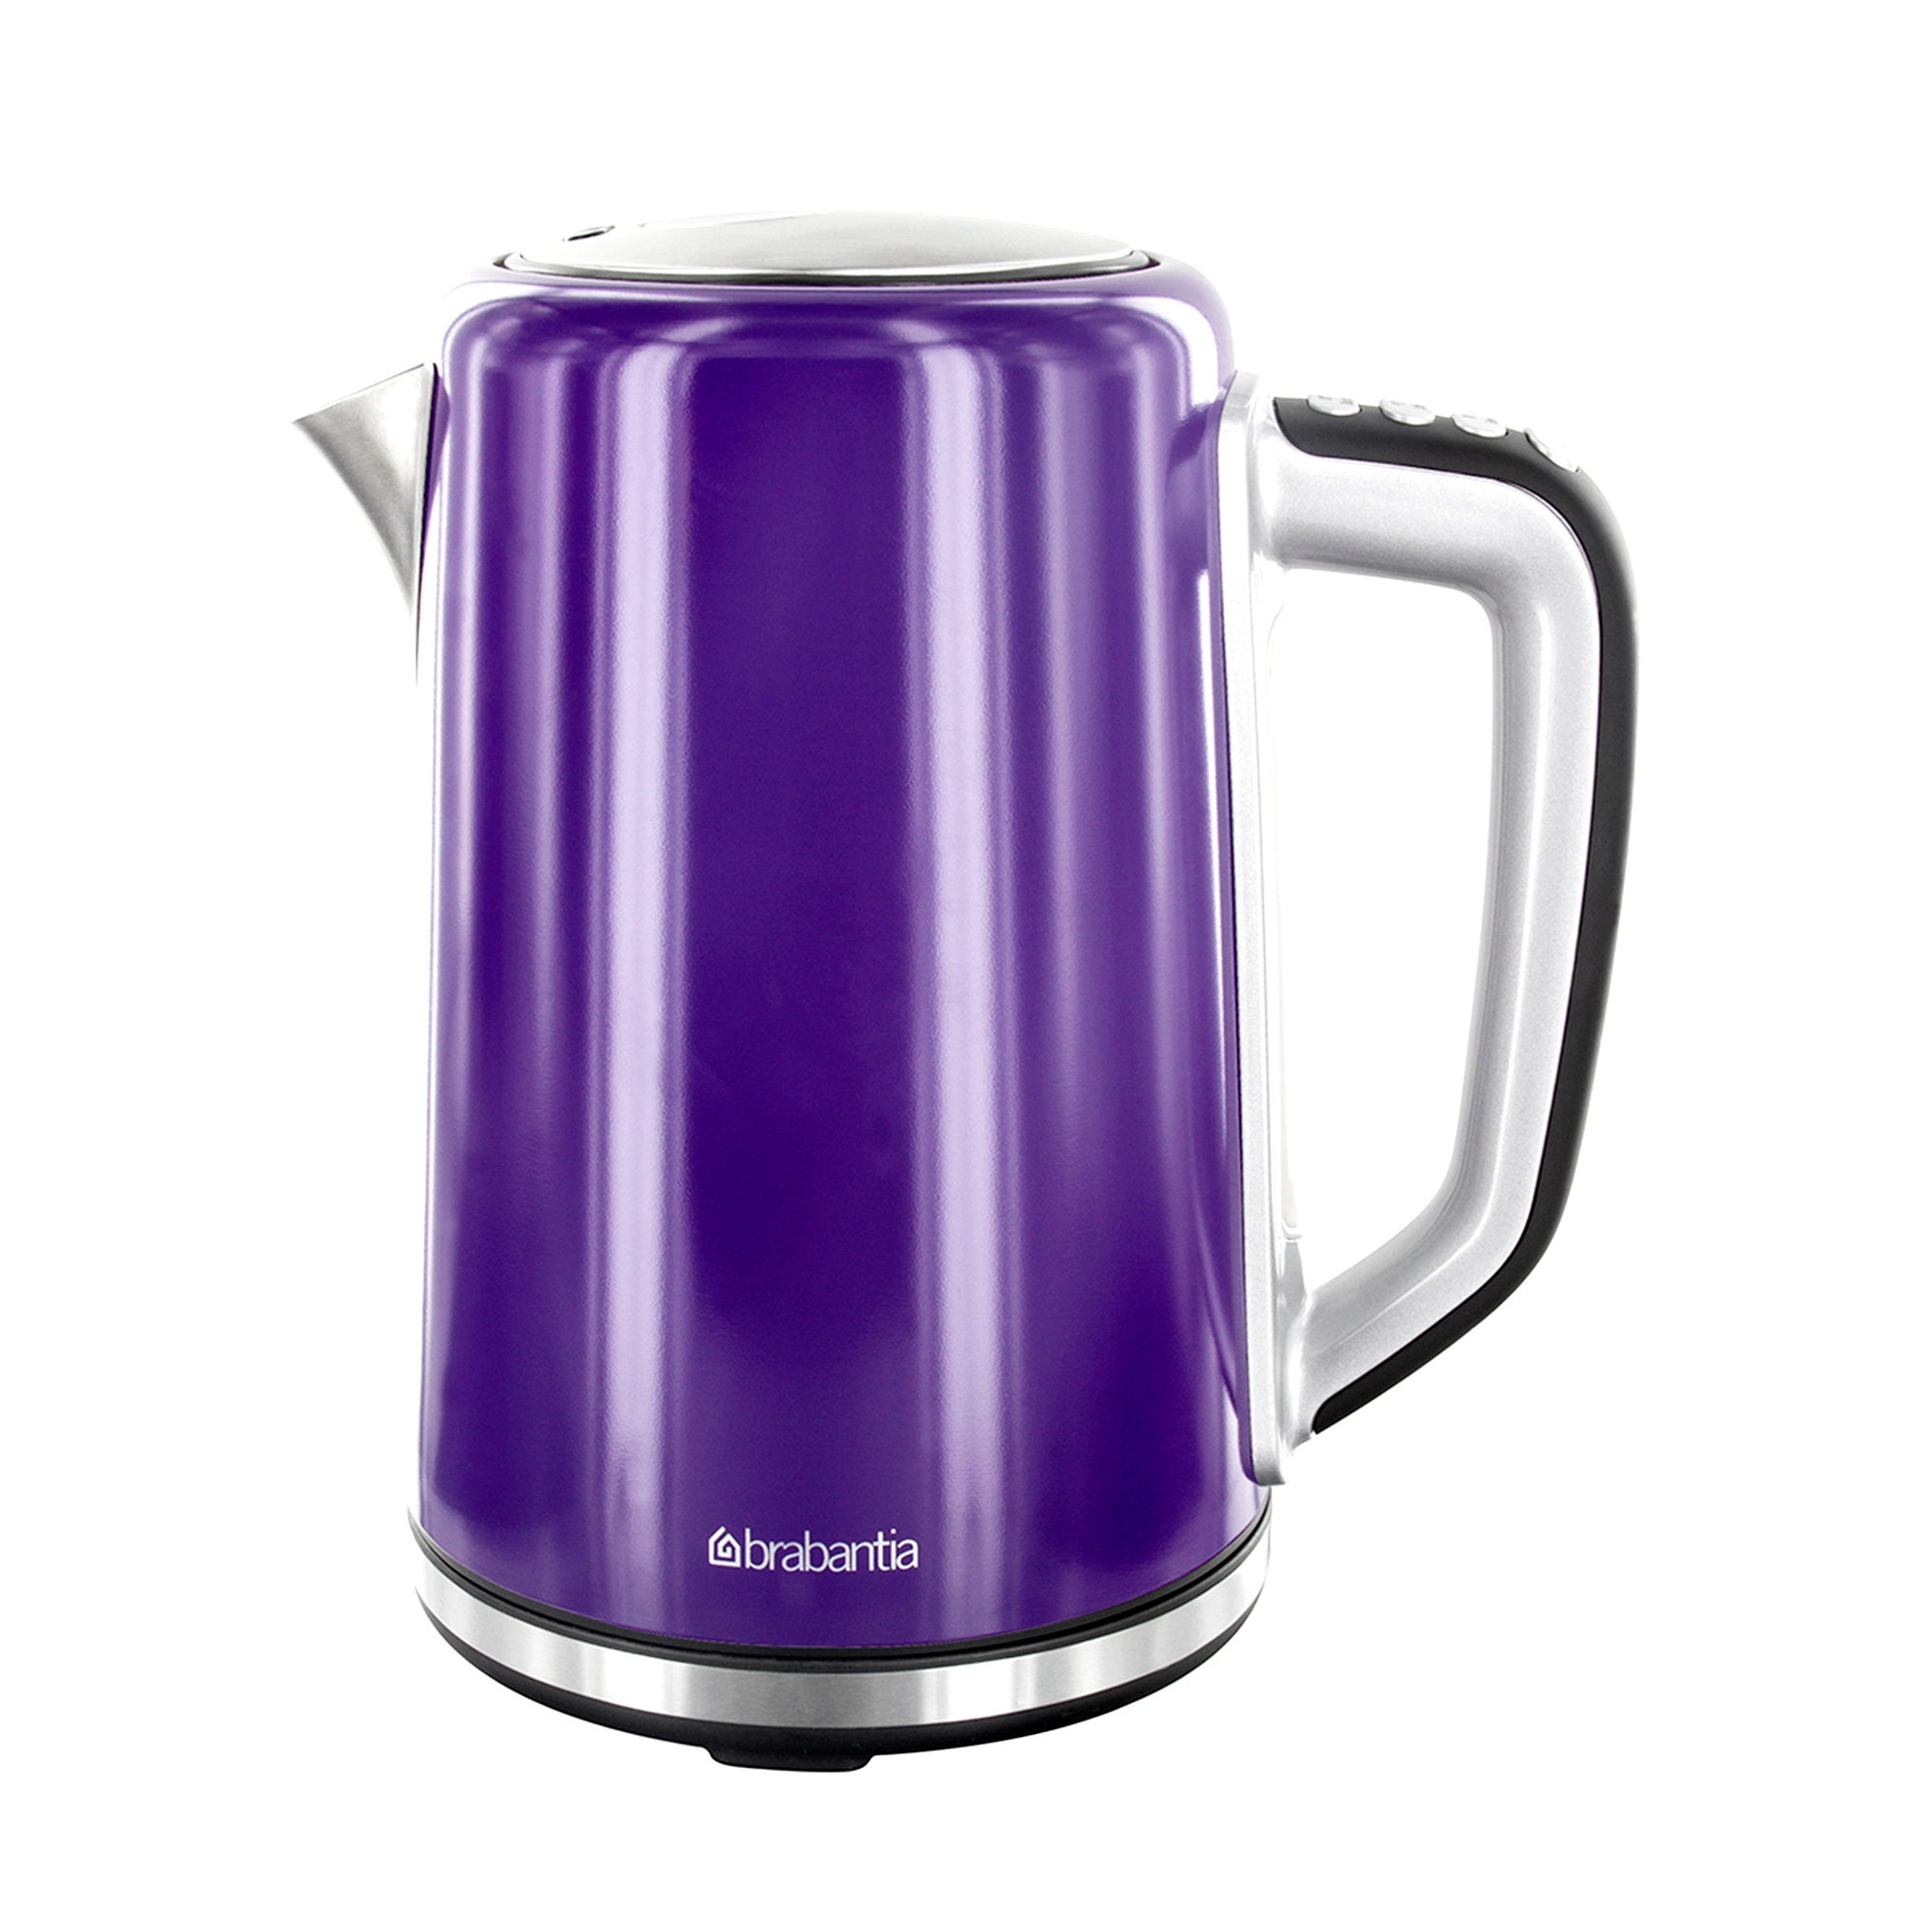 Brabantia Purple Stainless Steel Soft Grip Digital Kettle